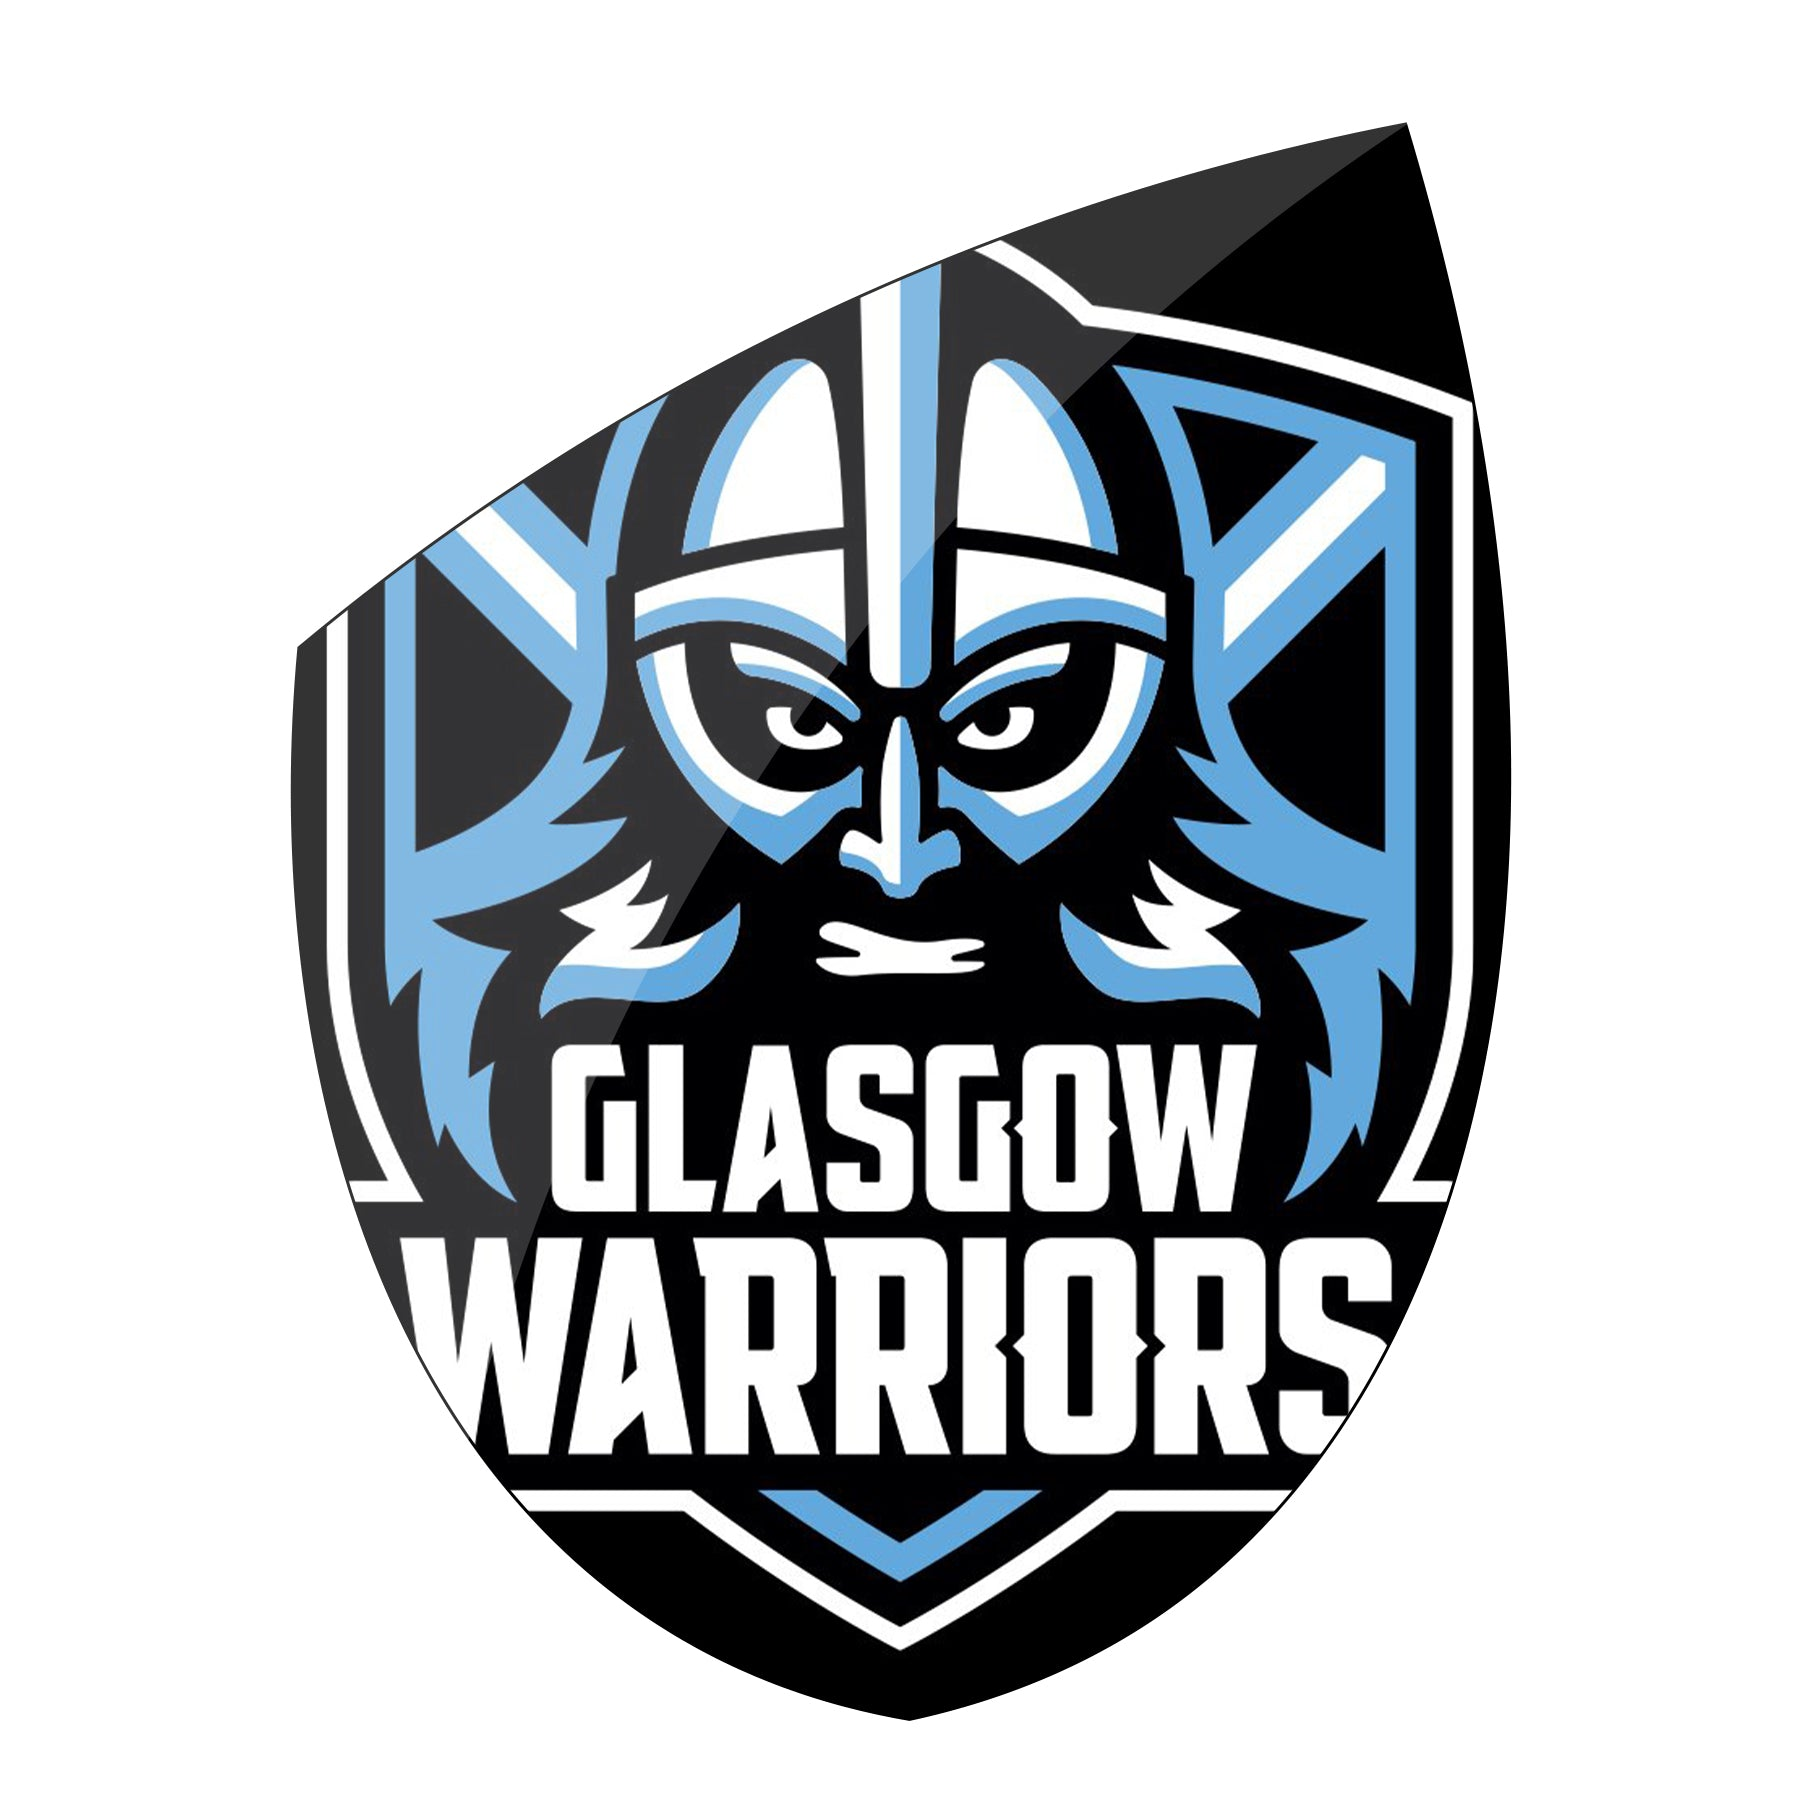 Exclusive Glasgow Warriors Rugby Gear